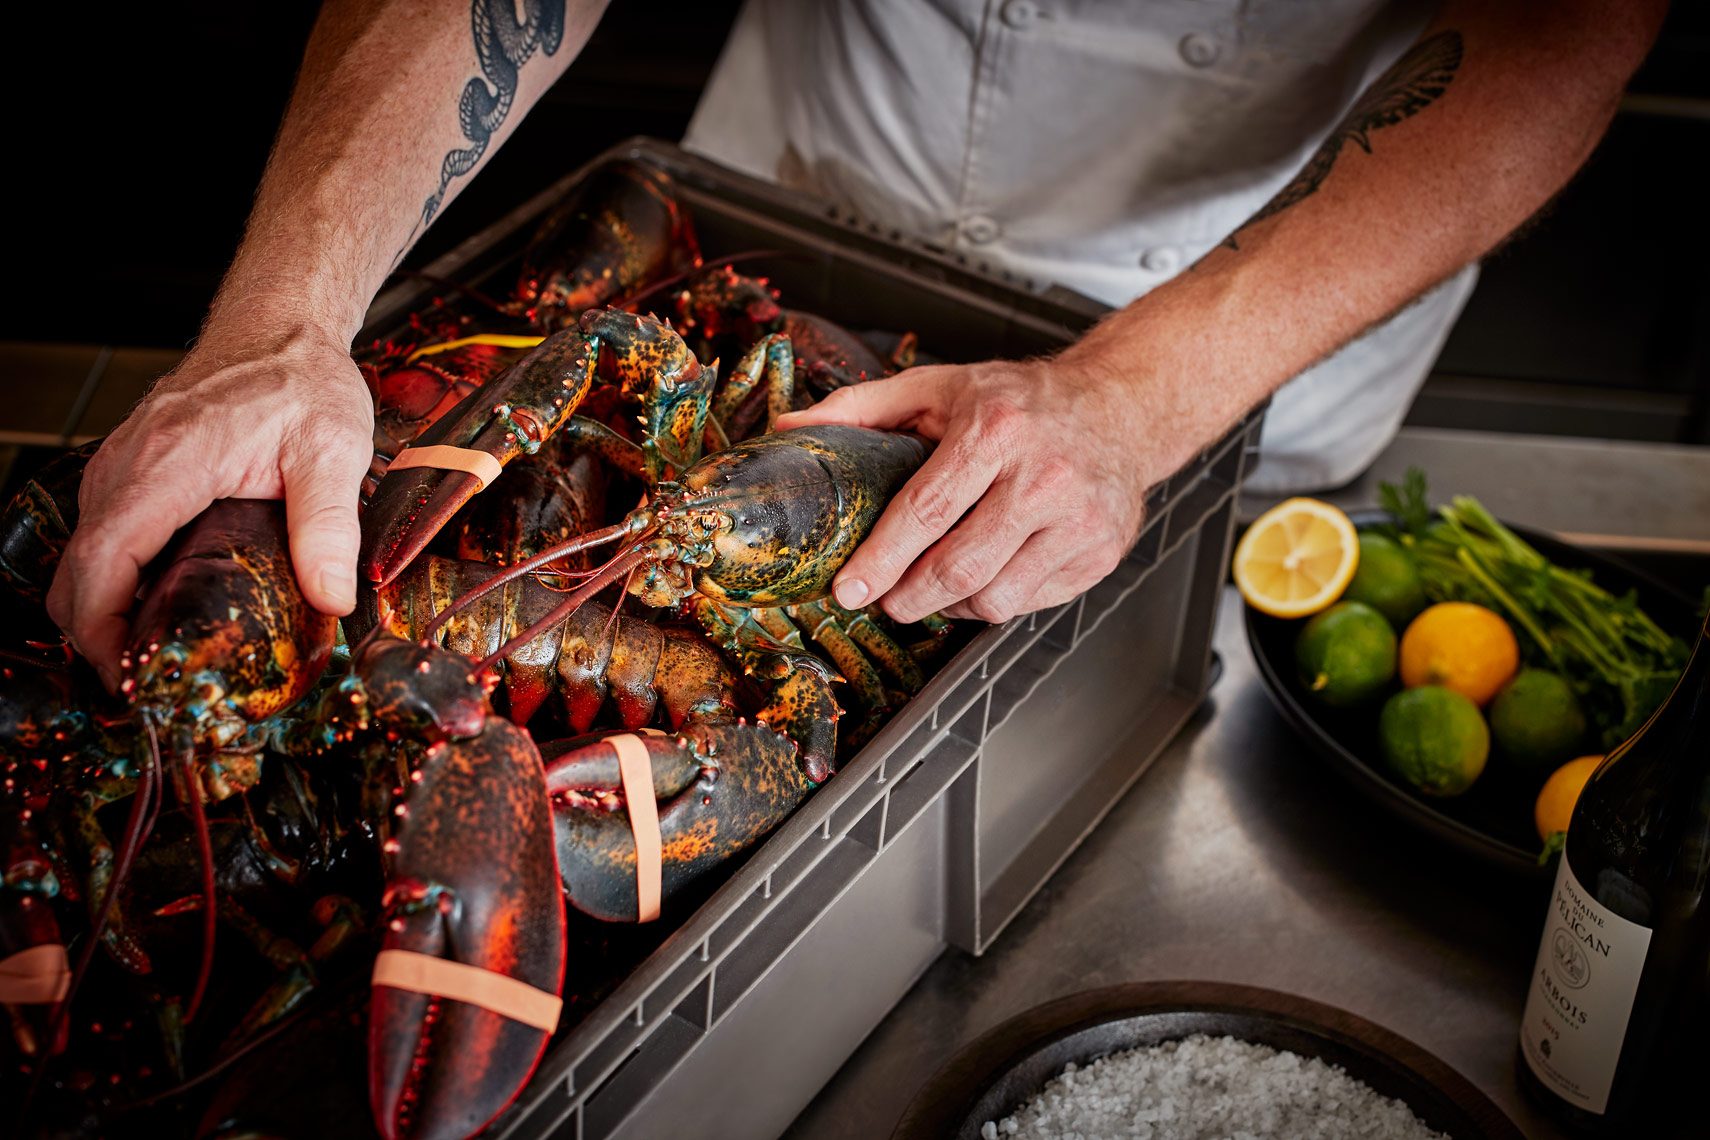 221141_221139_Kitchen_Lobster_02